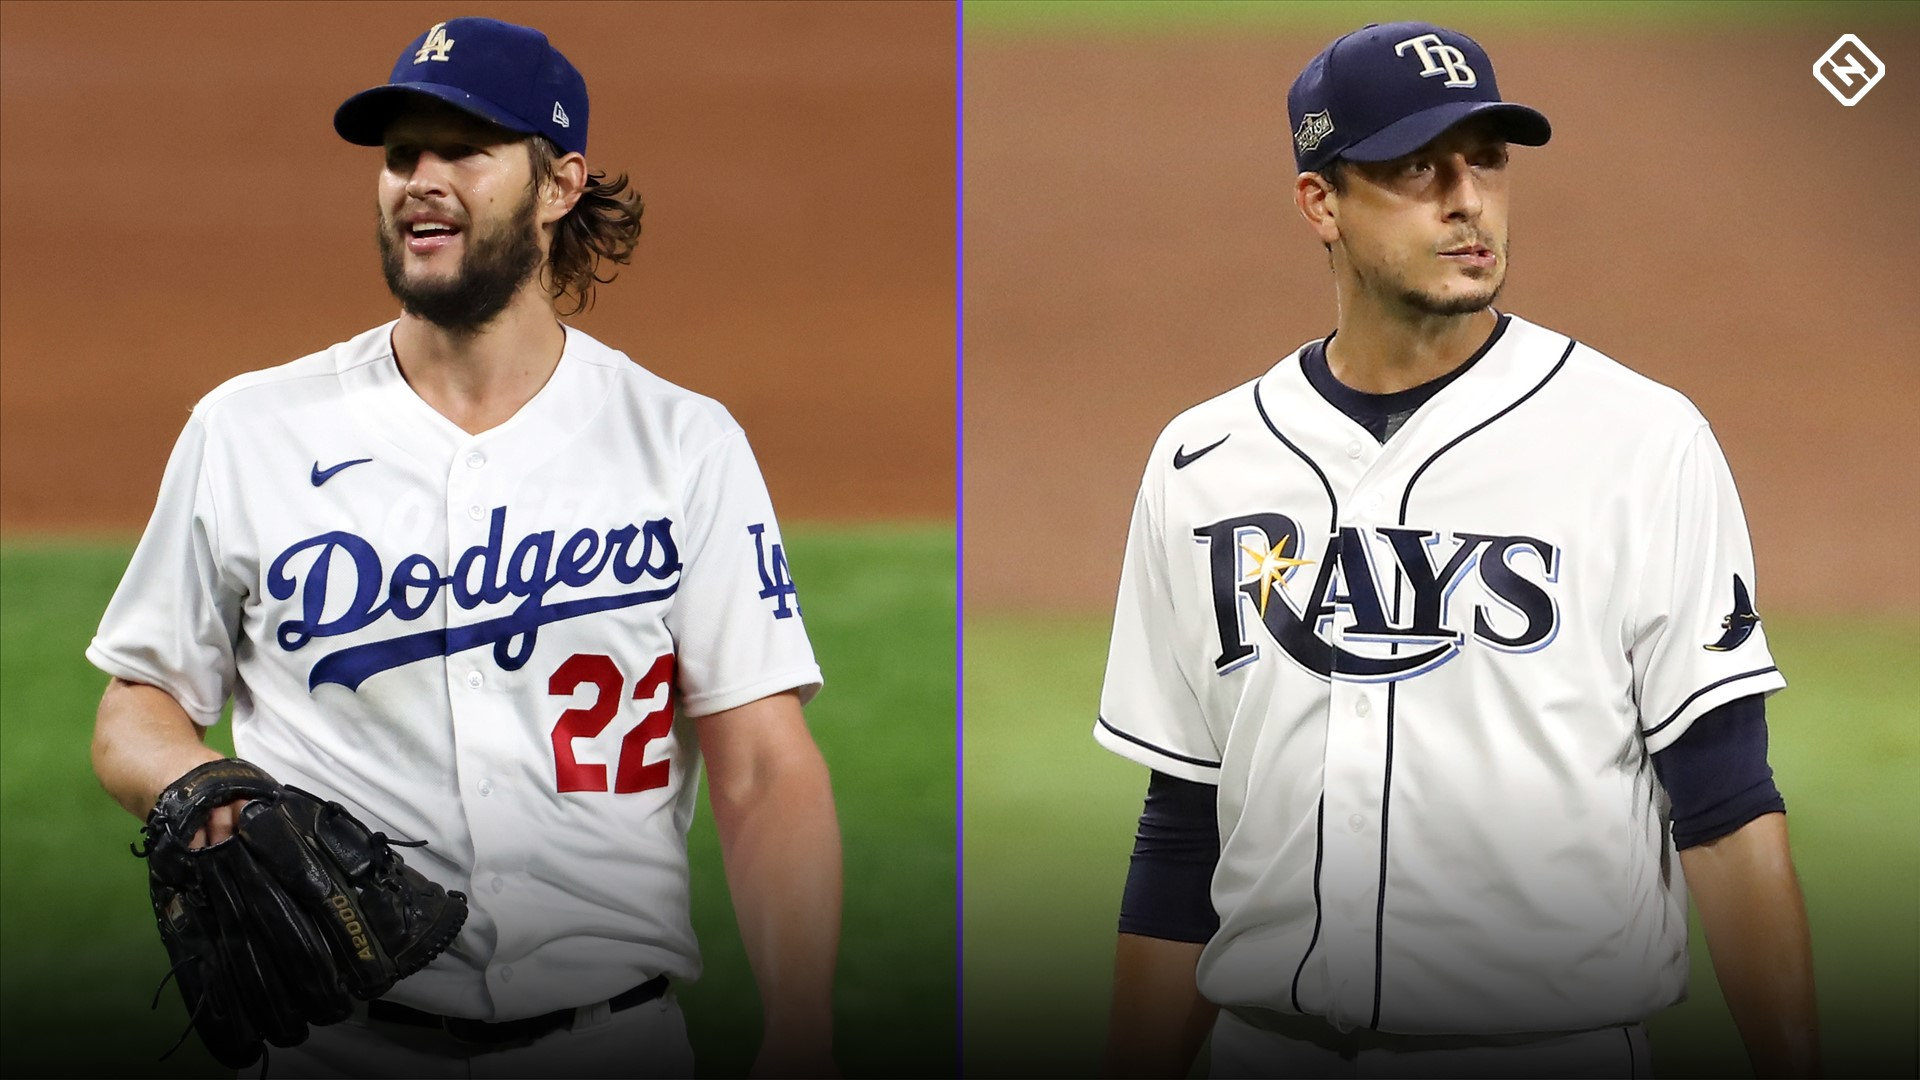 Dodgers vs. Rays payroll breakdown: 2020 World Series tests luxury vs. cost-conscious MLB models